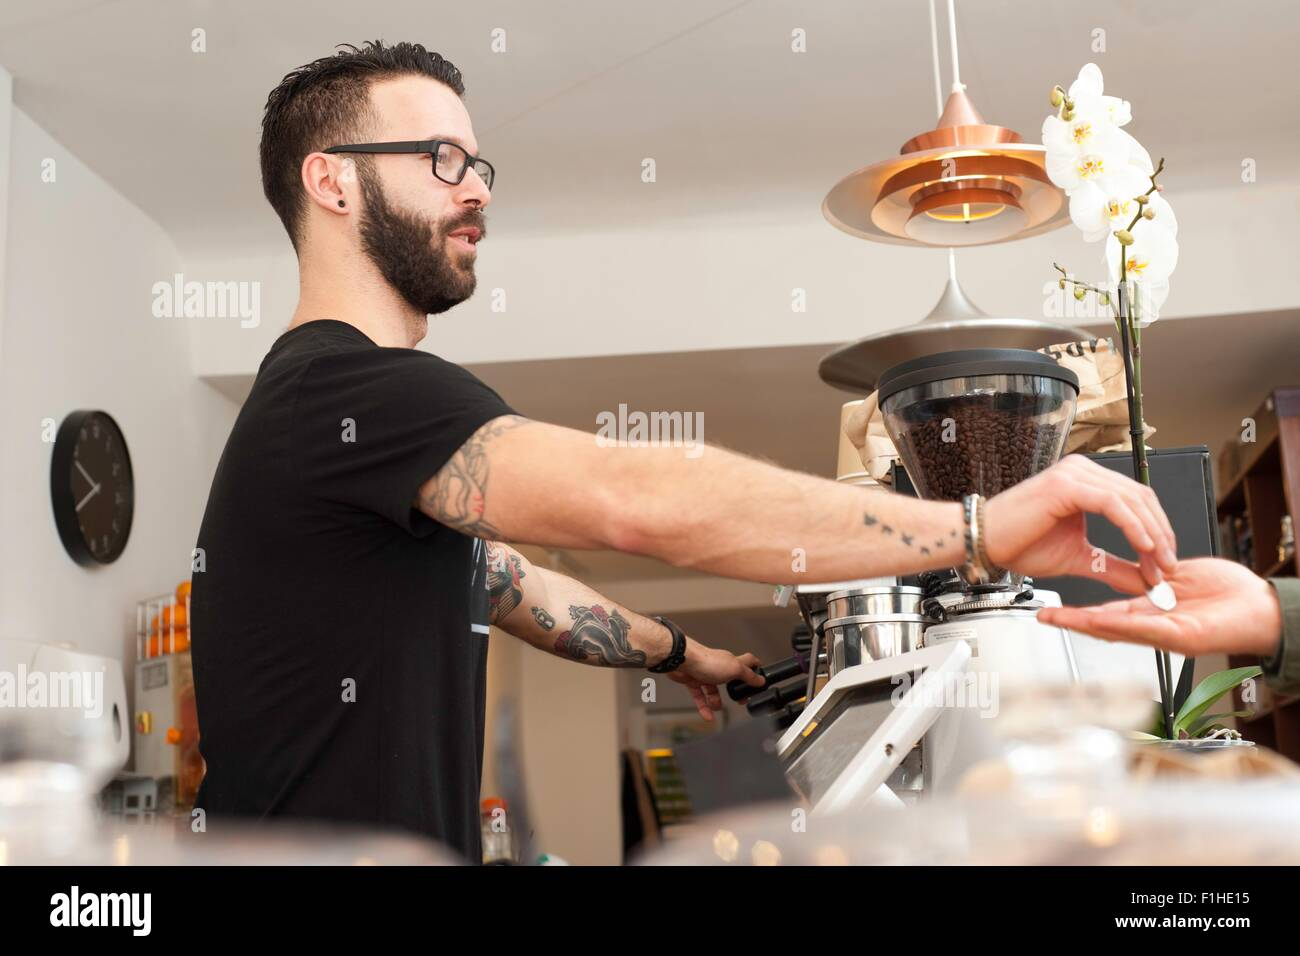 Cafe waiter handing coins to customer from behind counter - Stock Image